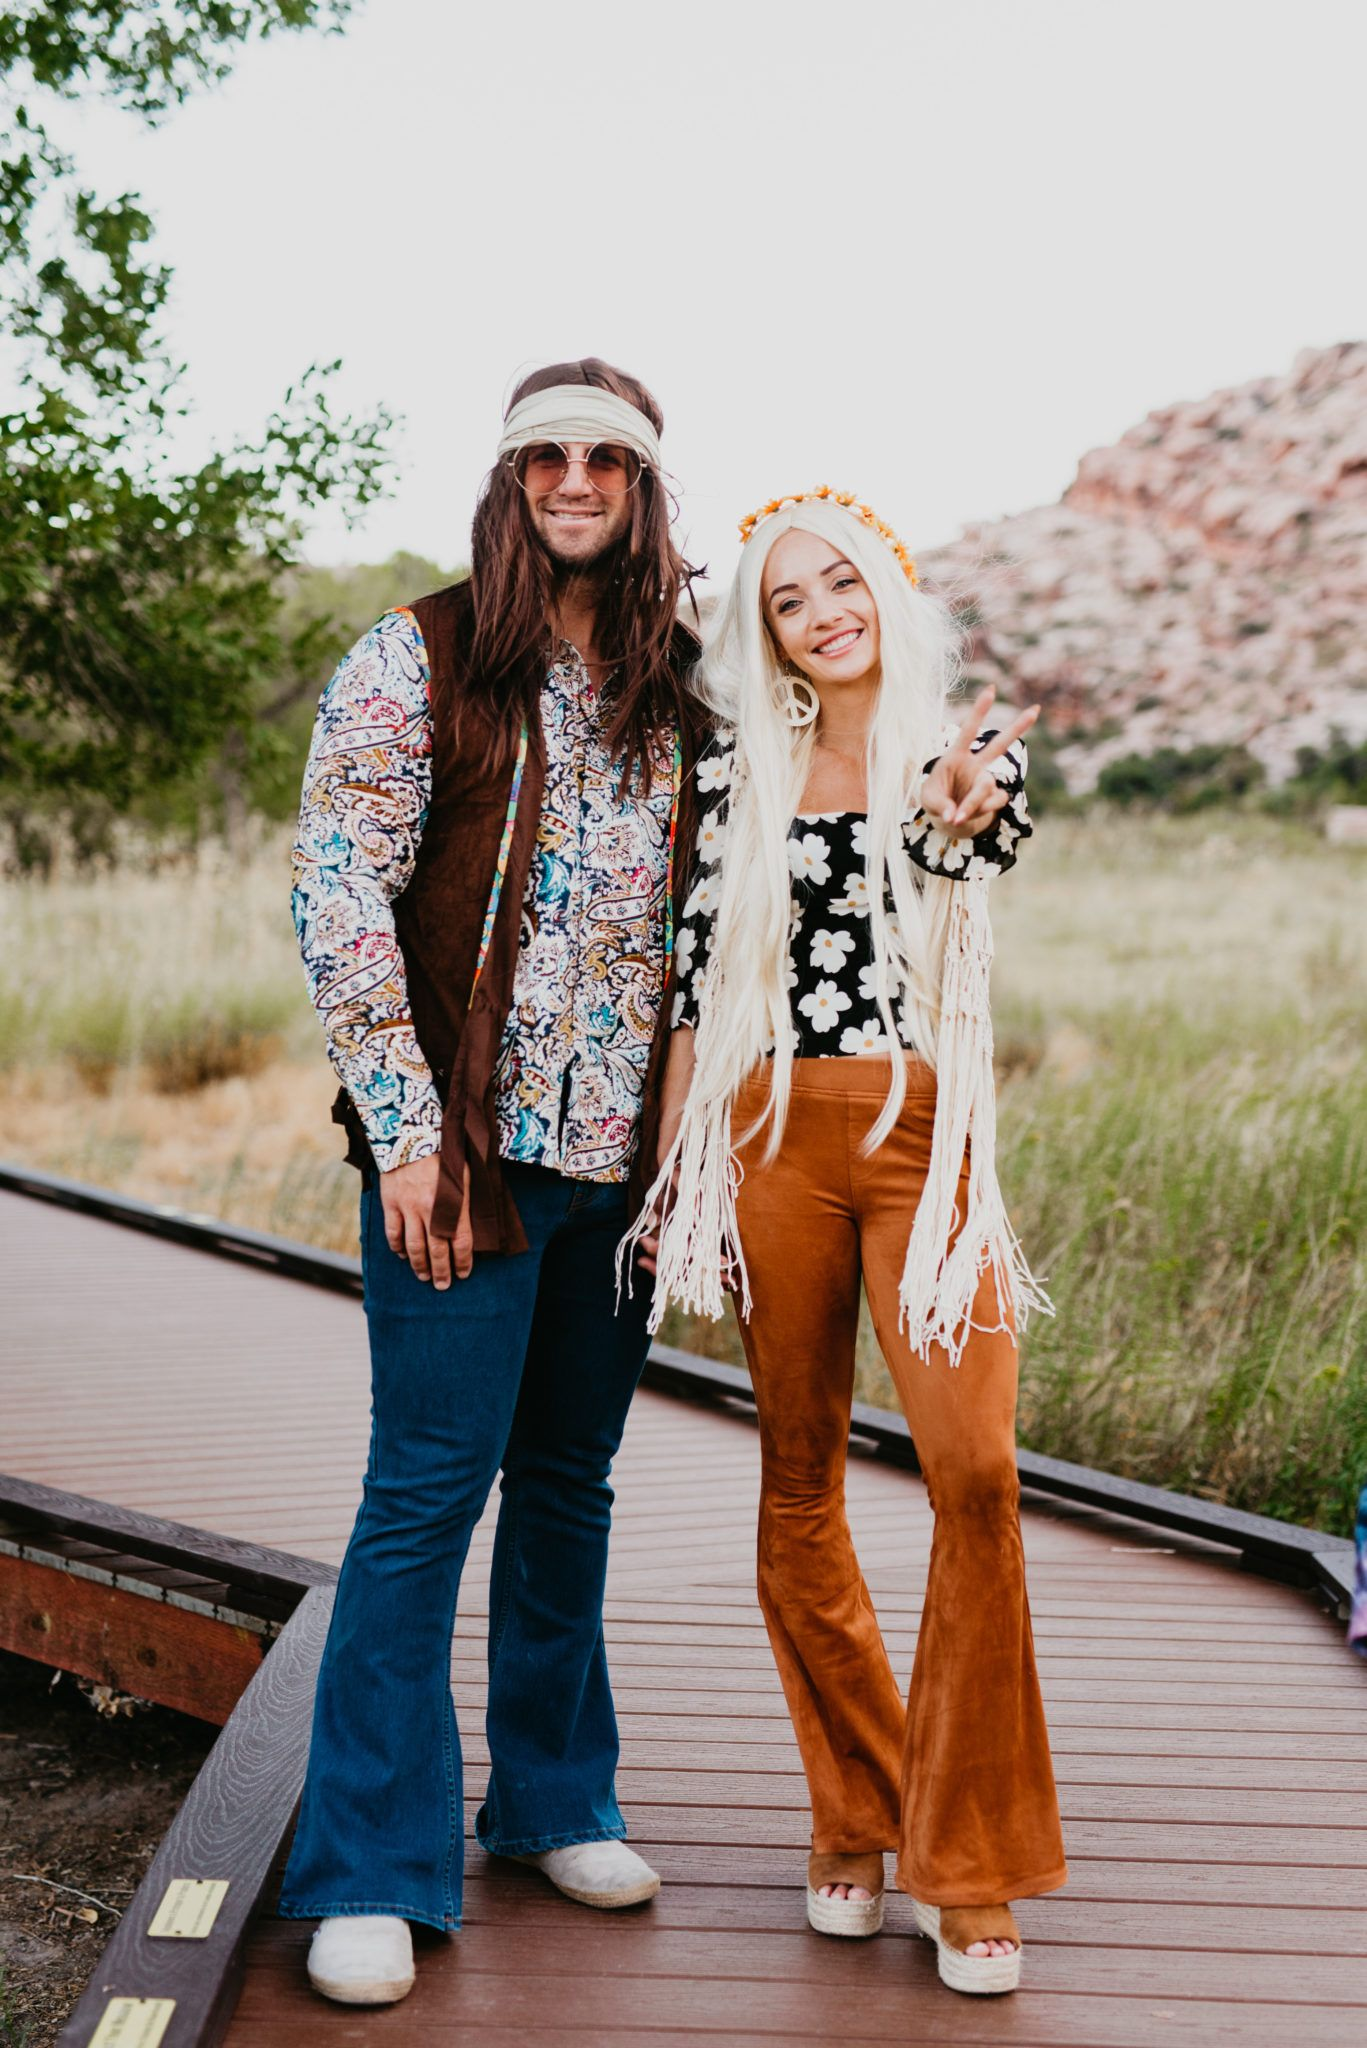 Diy Hippie Costume Ideas For Halloween Outfits Outings Hippie Halloween Costumes Diy Hippie Costume Halloween Hippie Costume Diy